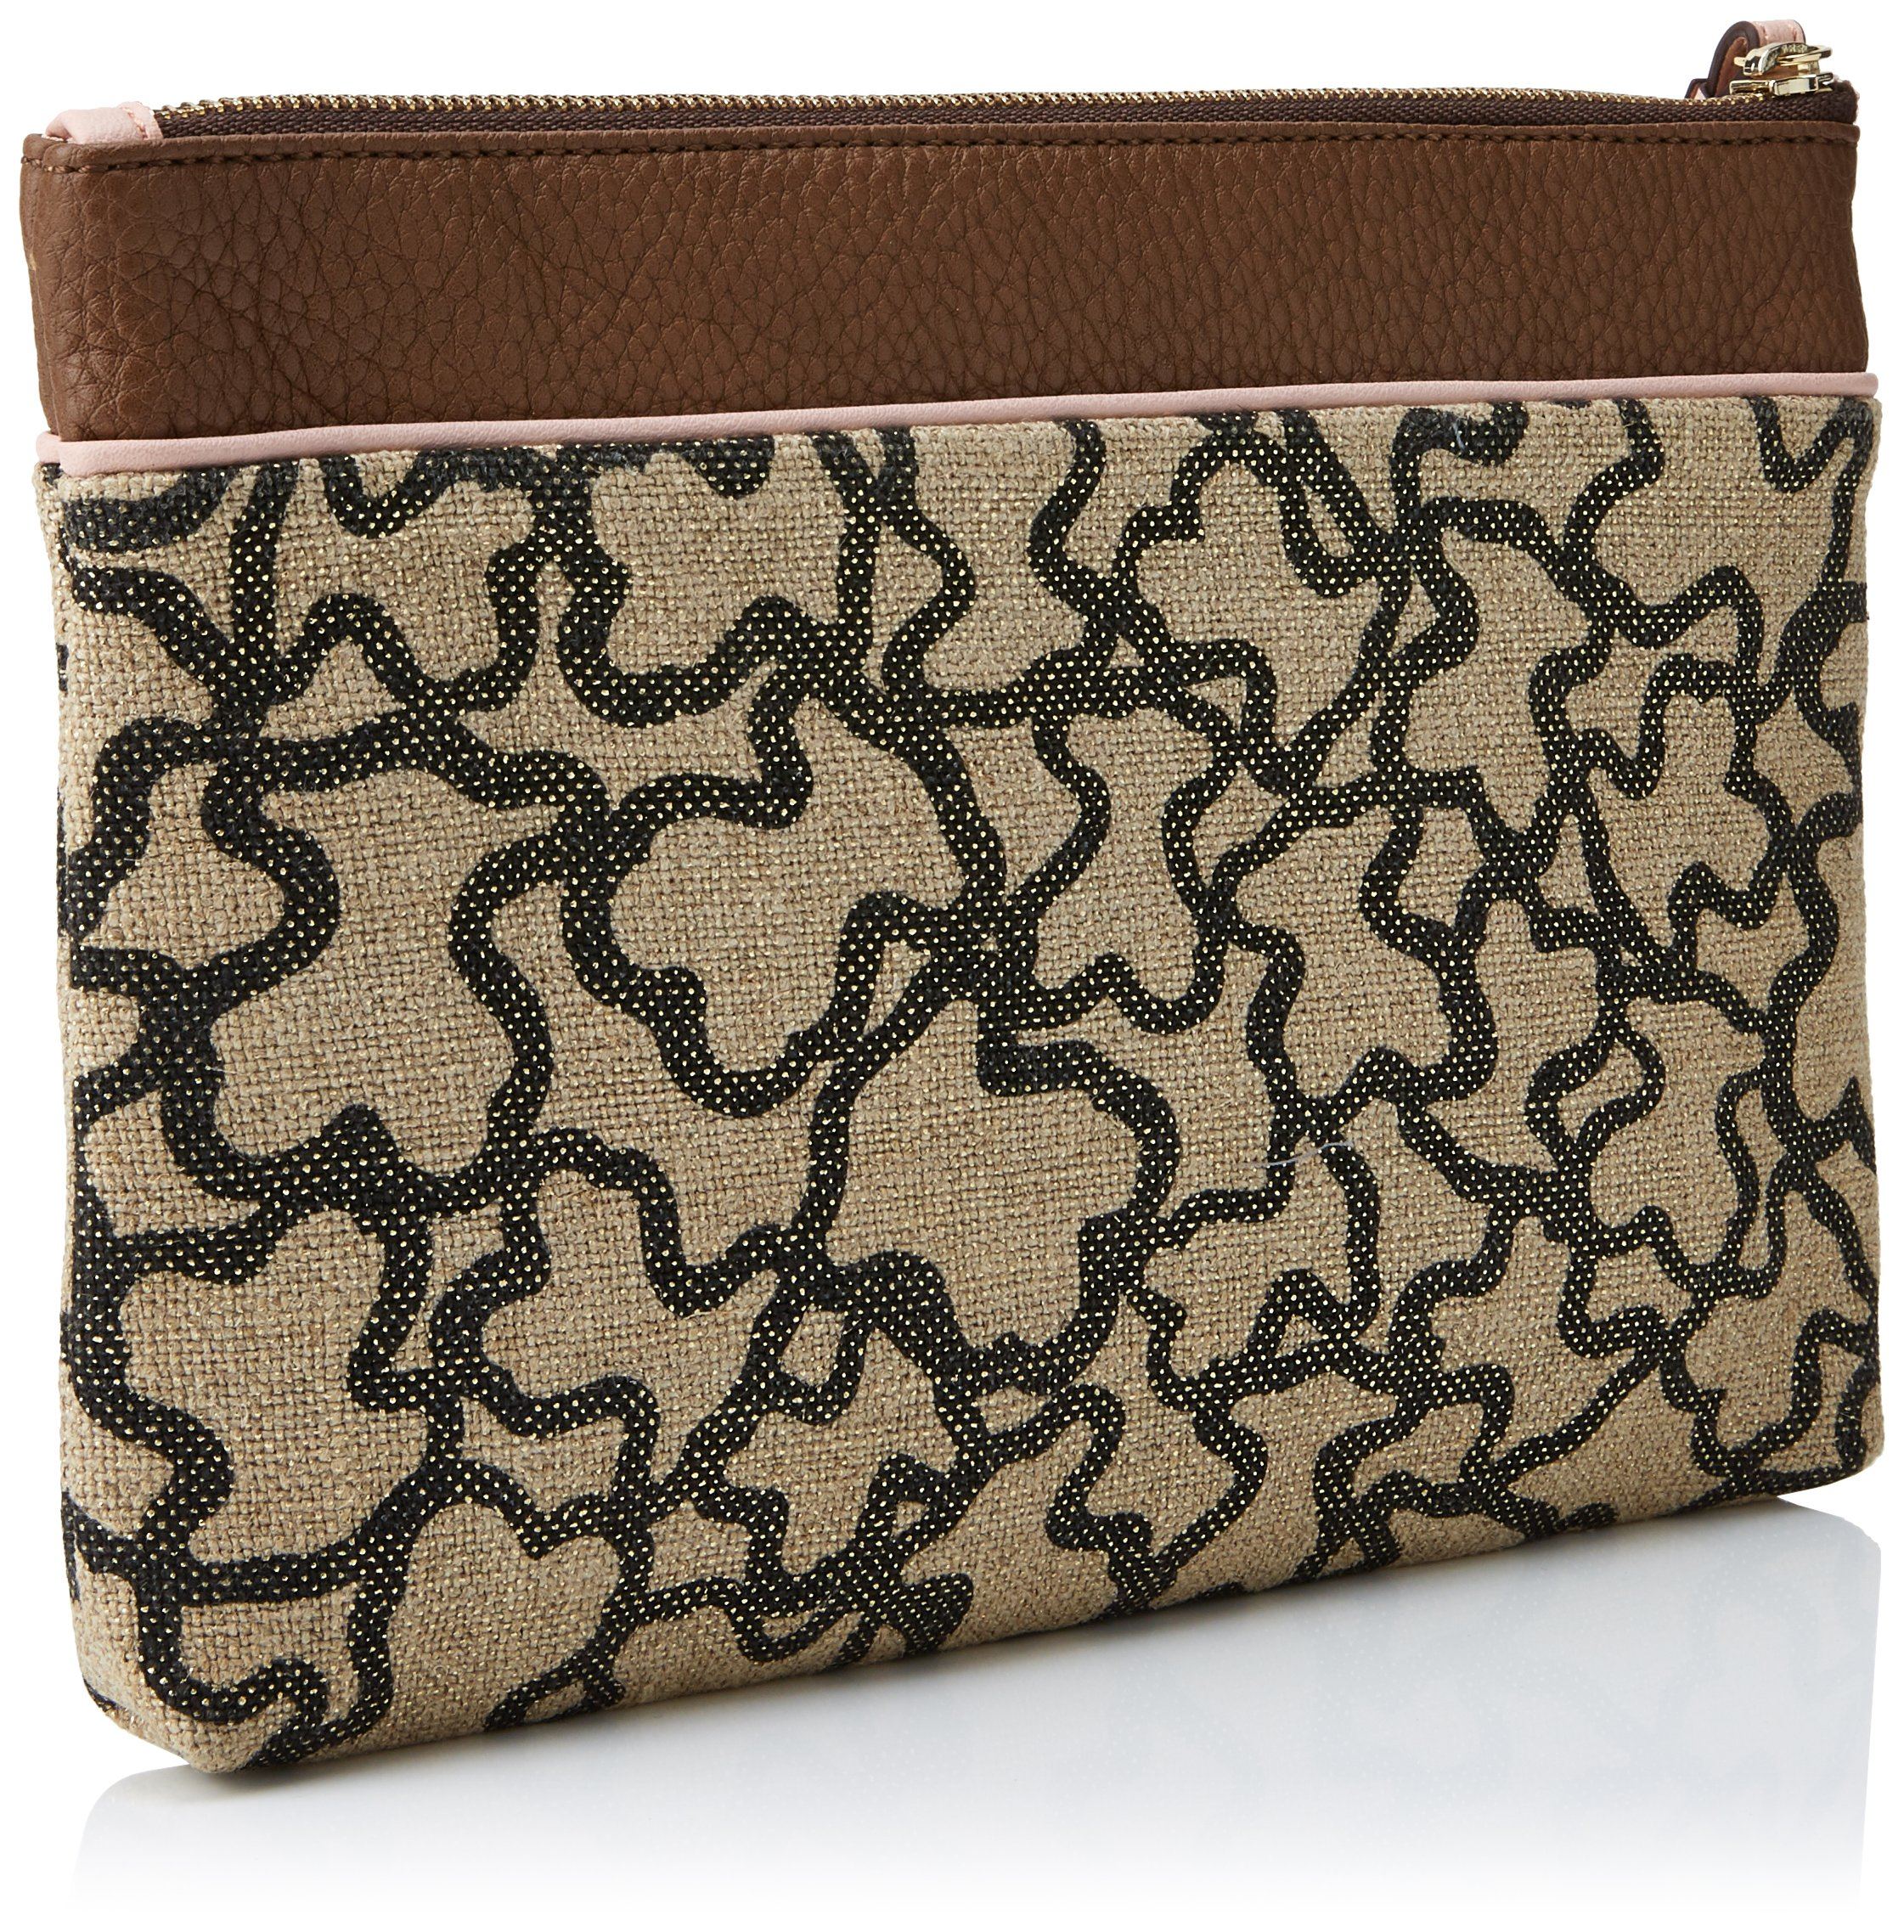 A1aasbWtNTL - Tous City Elice New, Bolso para Mujer